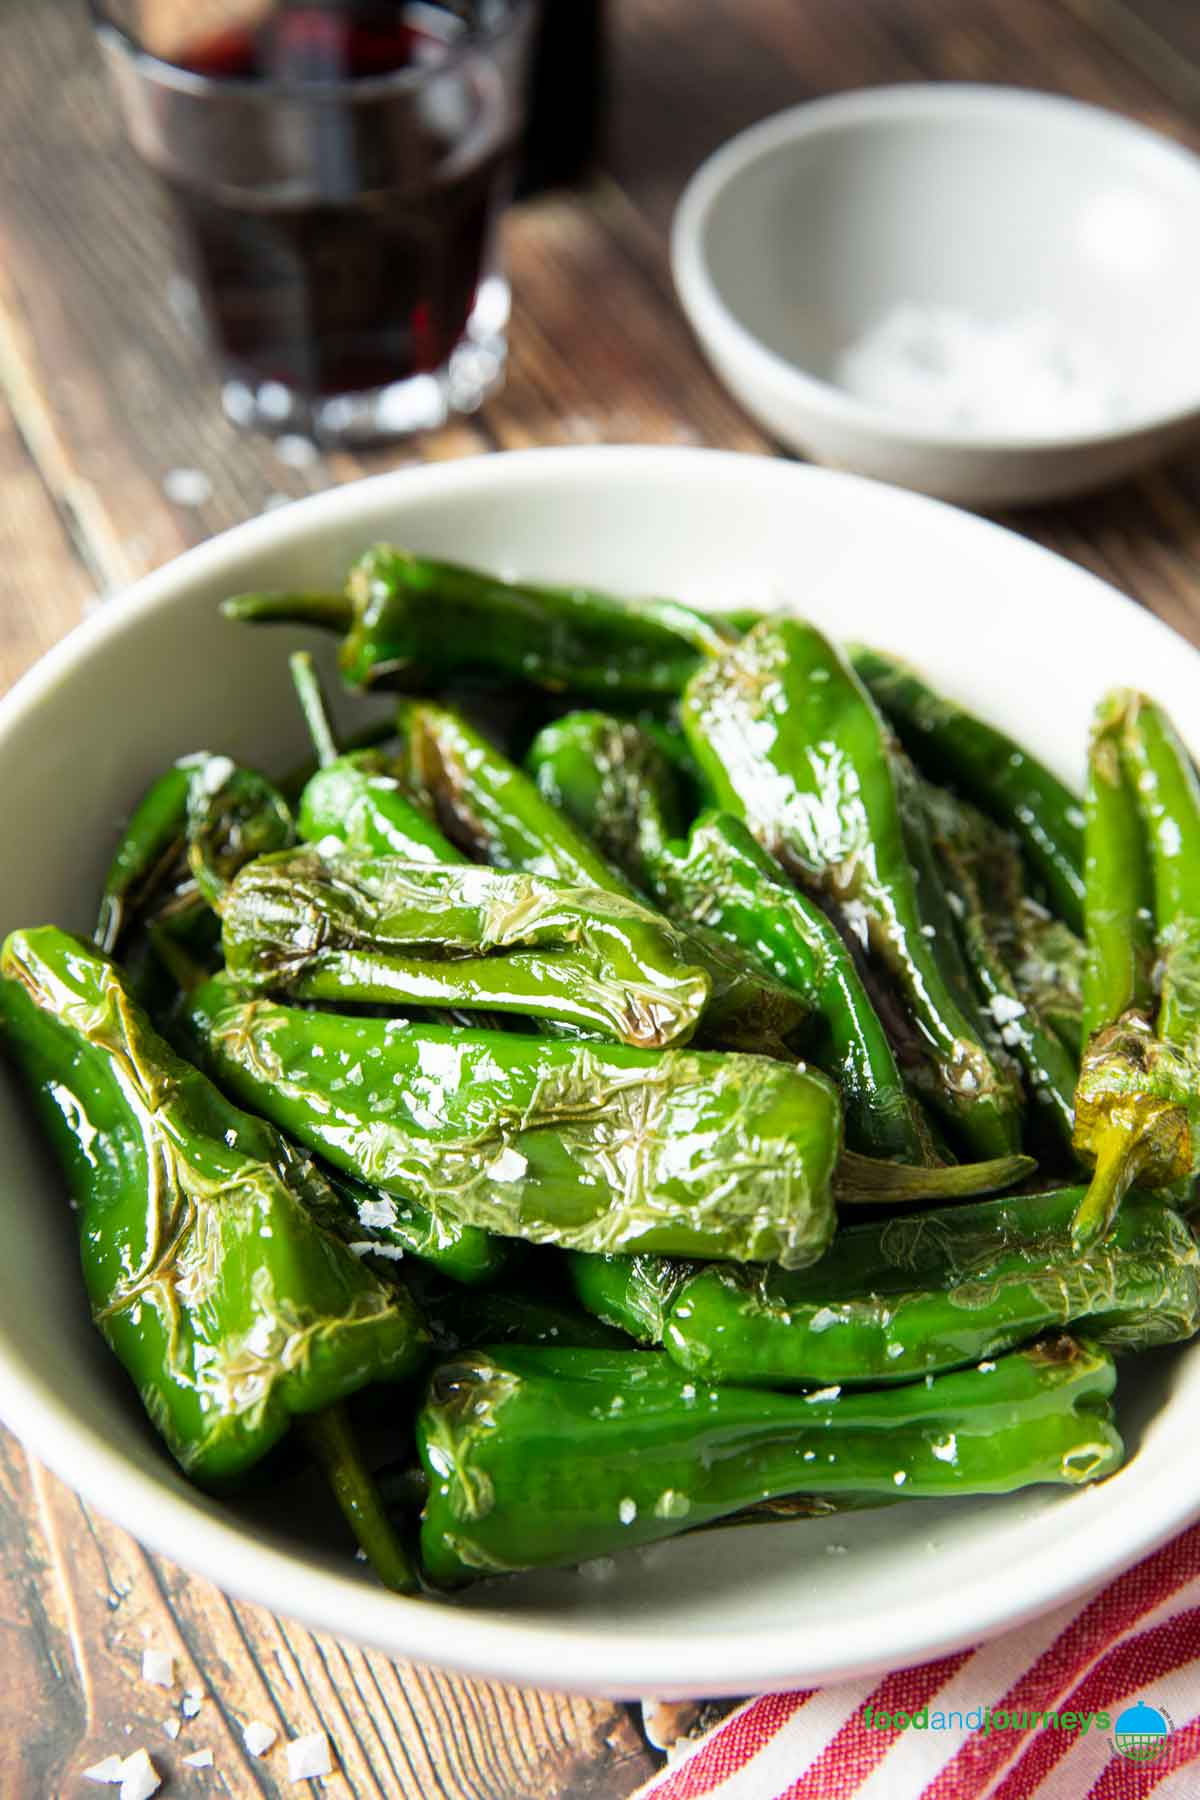 A closer shot of a serving of fried padron peppers, with sea salt on it.